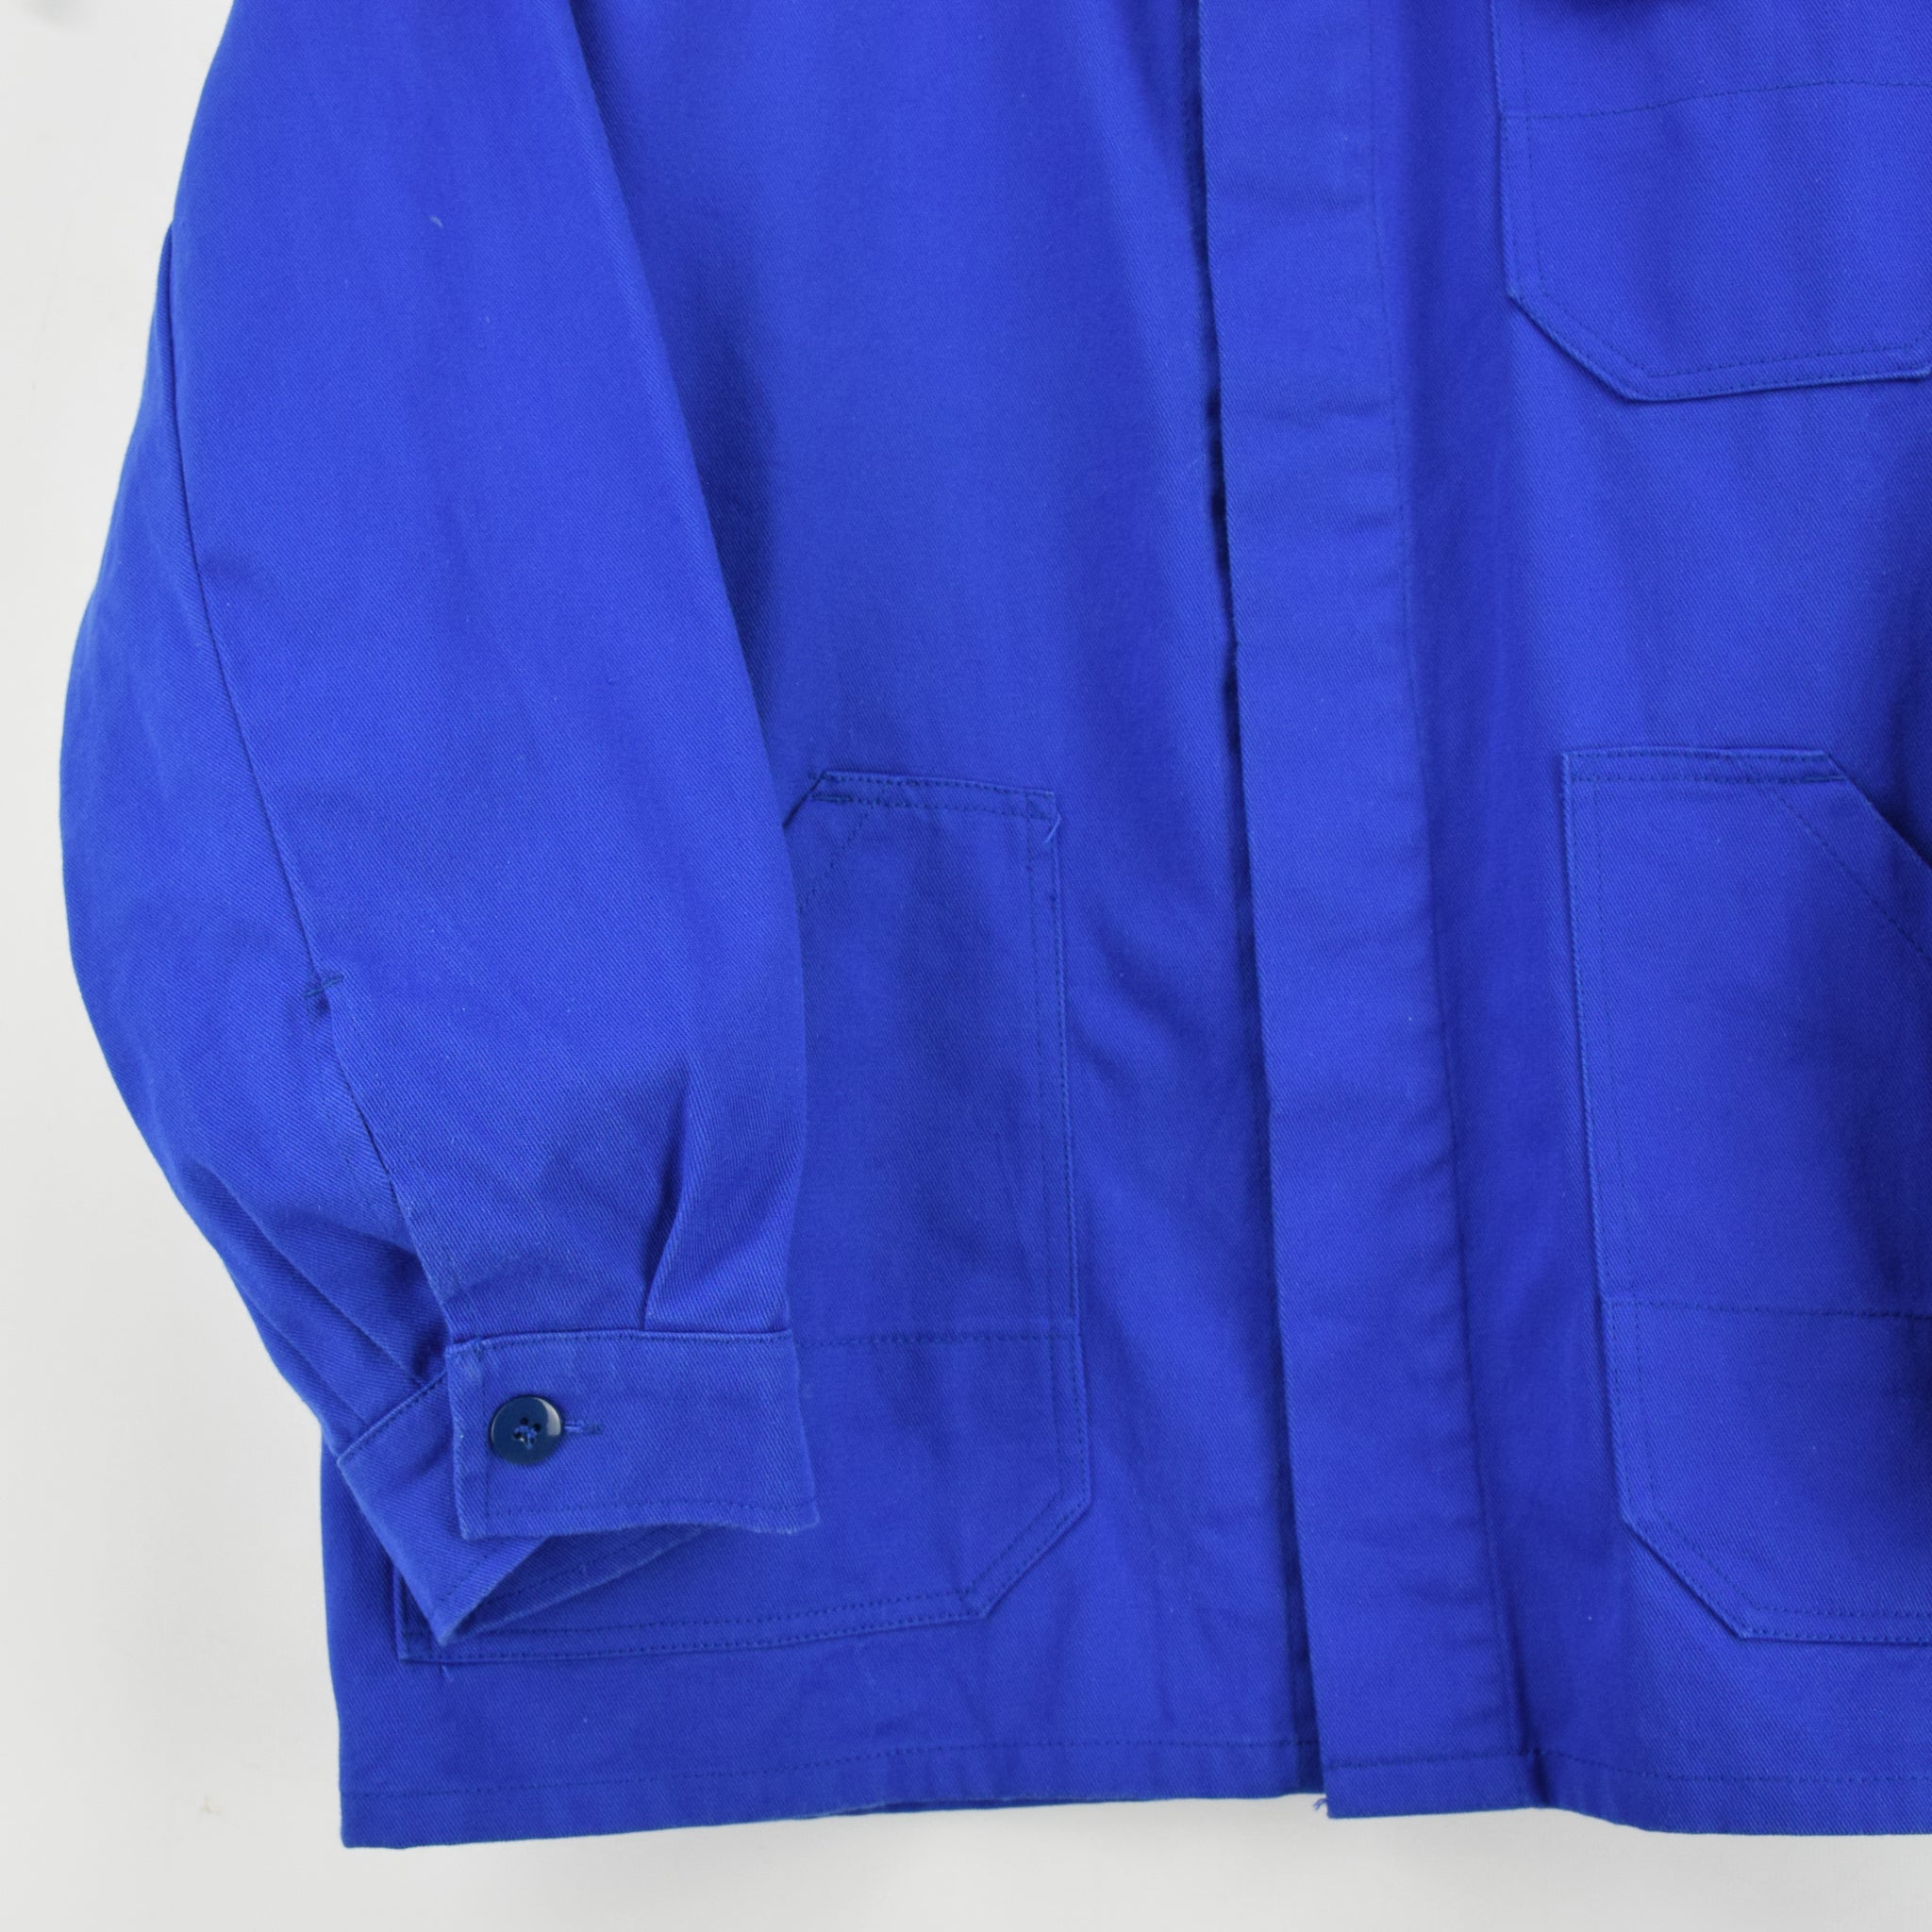 Vintage Bright Blue French Style Worker Sanforized Cotton Chore Jacket M front hem